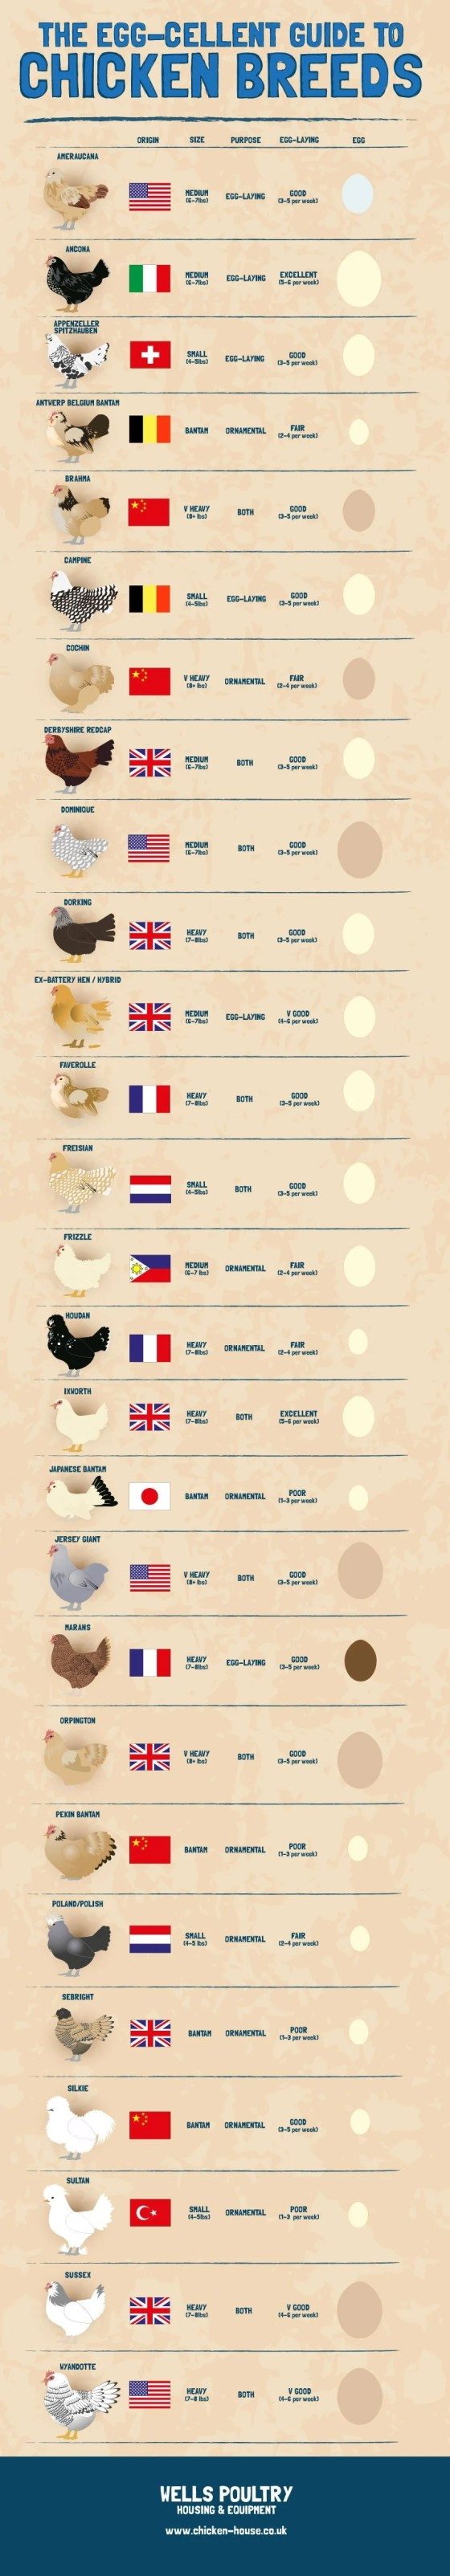 the-eggcellent-guide-to-chicken-breeds_518a5ab62bebb